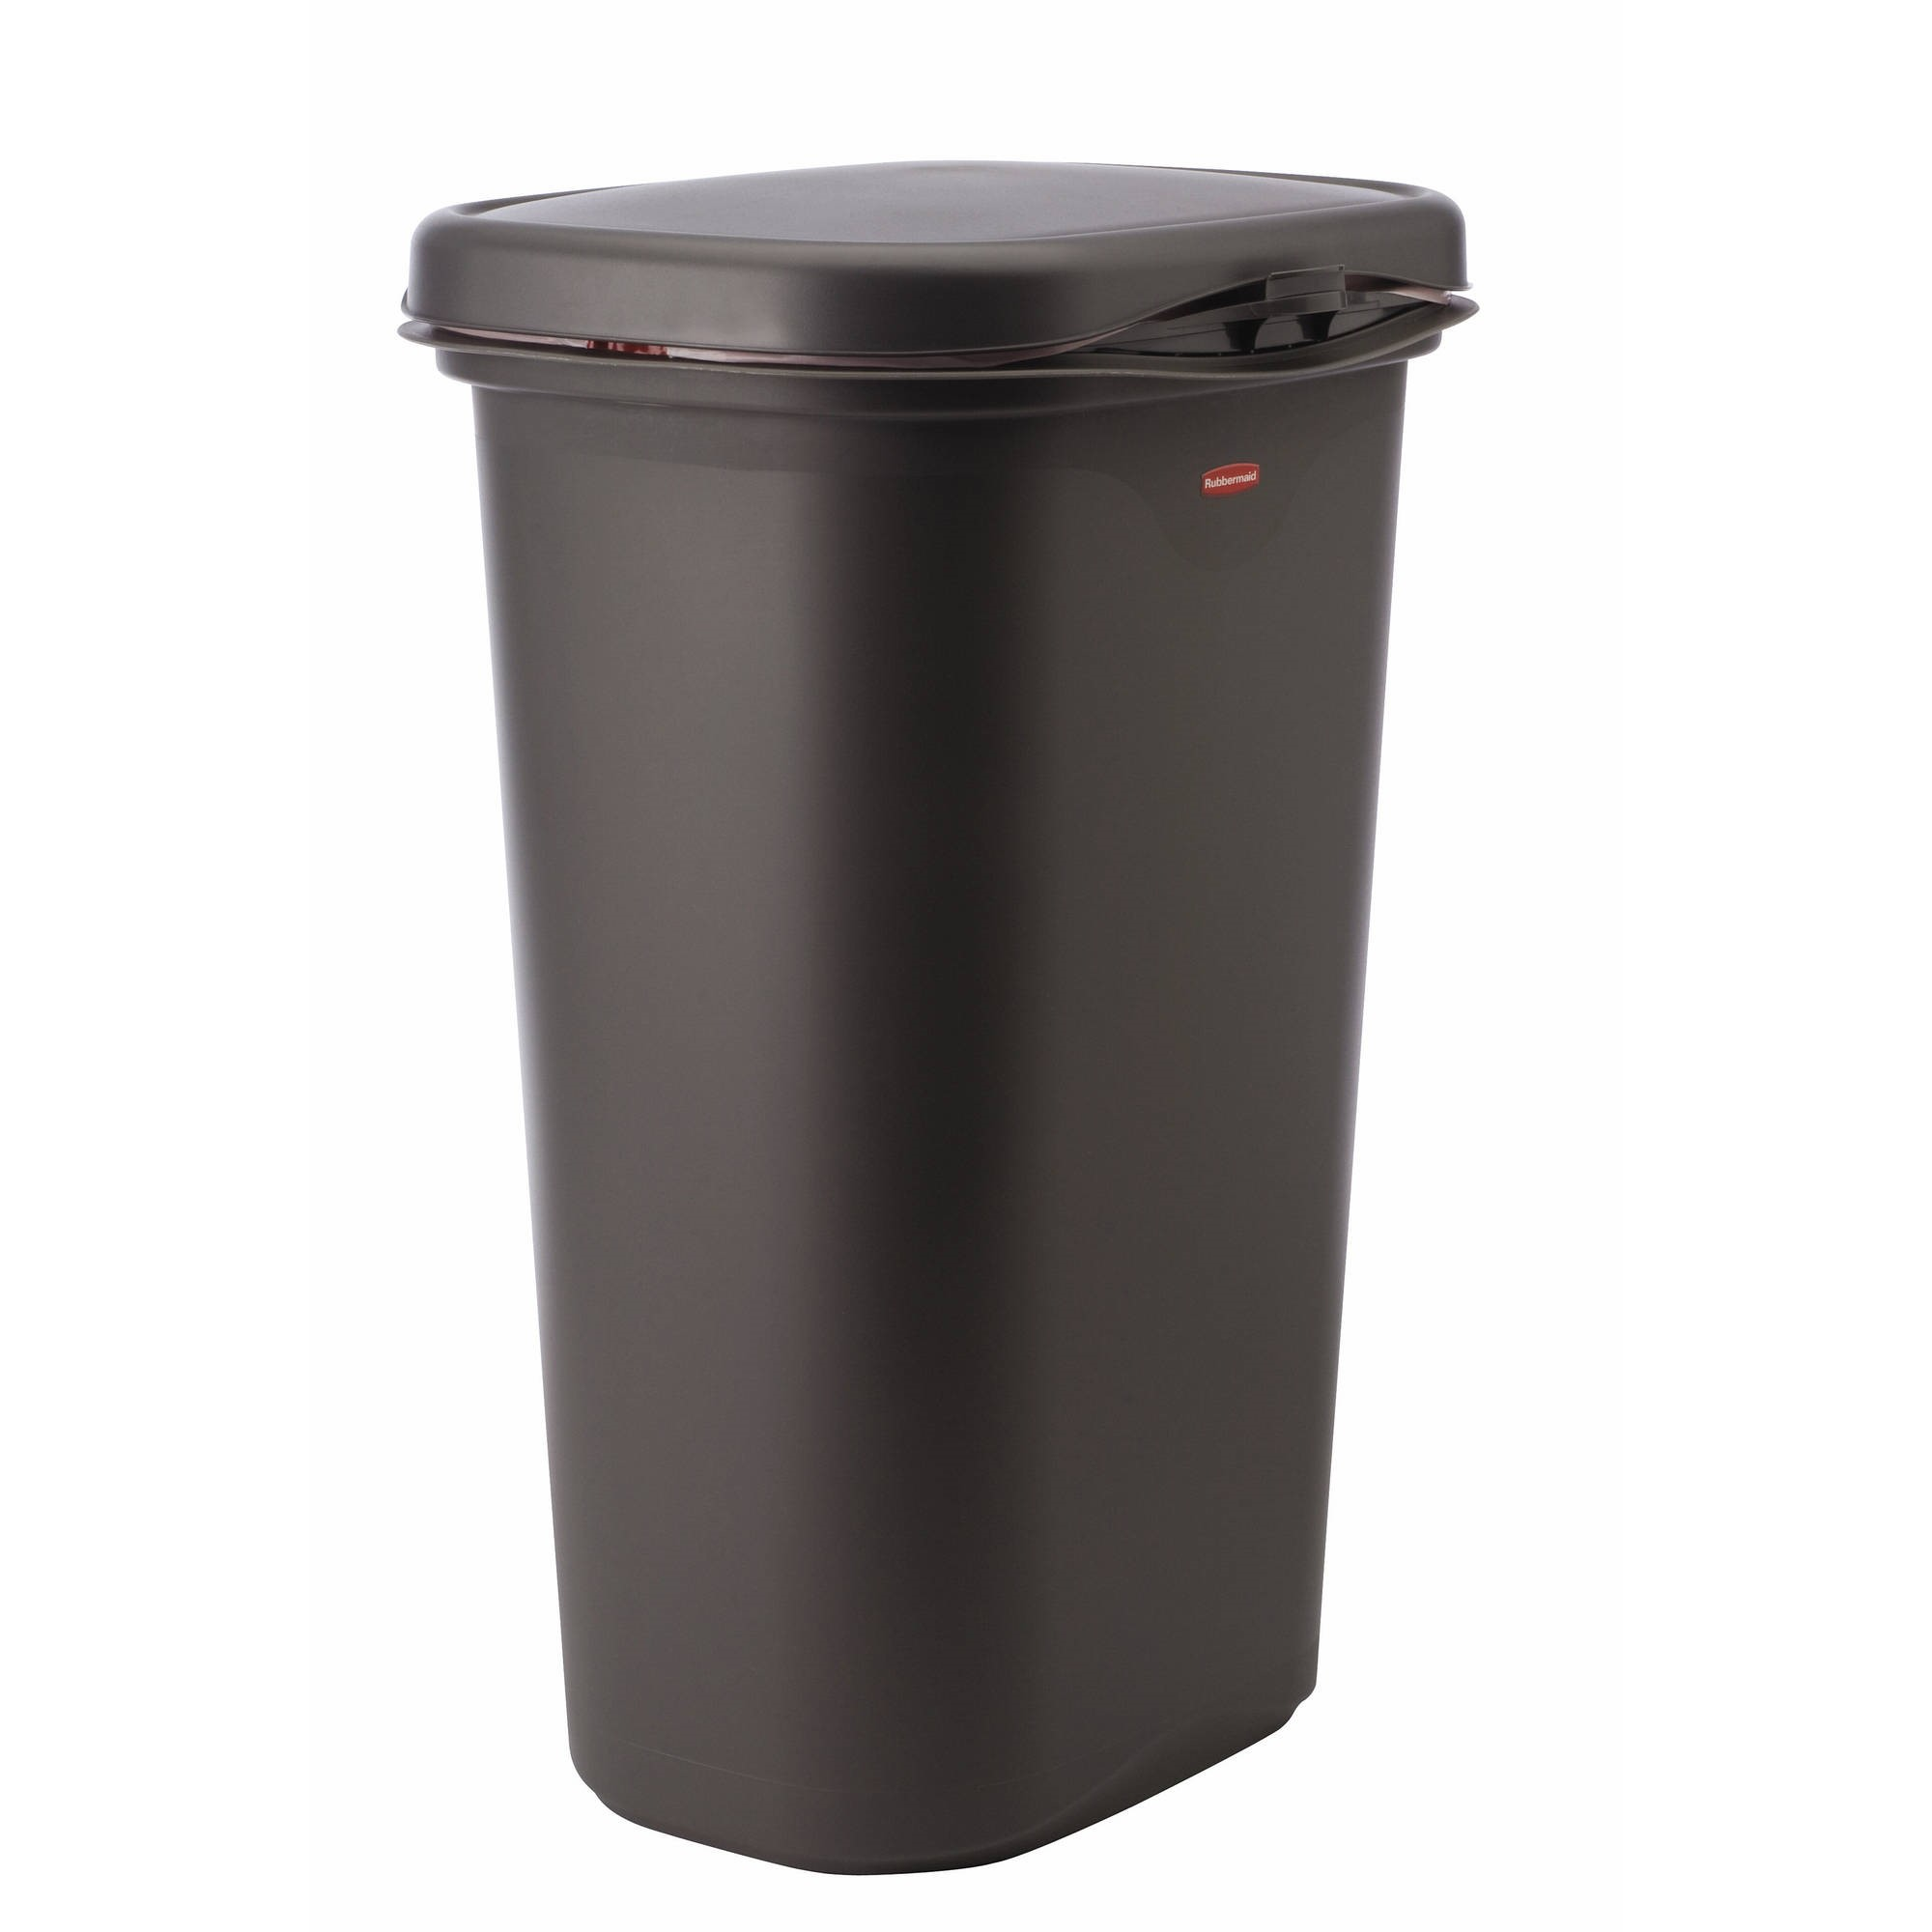 rubbermaid linerlock spring top trash can 13 gal cashmere. Black Bedroom Furniture Sets. Home Design Ideas